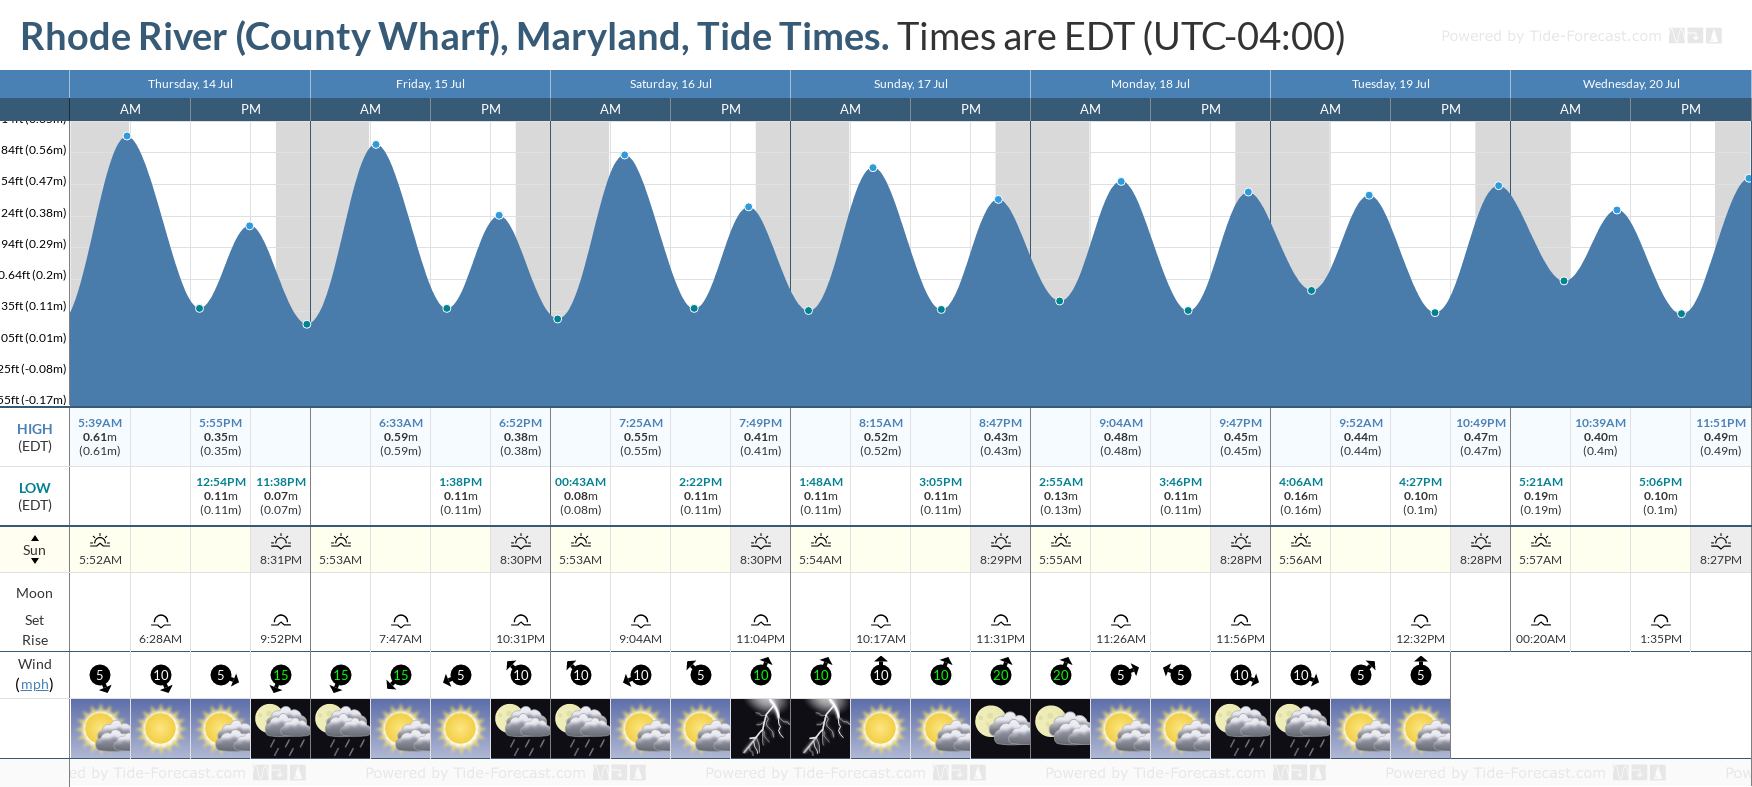 Rhode River (County Wharf), Maryland Tide Chart including high and low tide tide times for the next 7 days